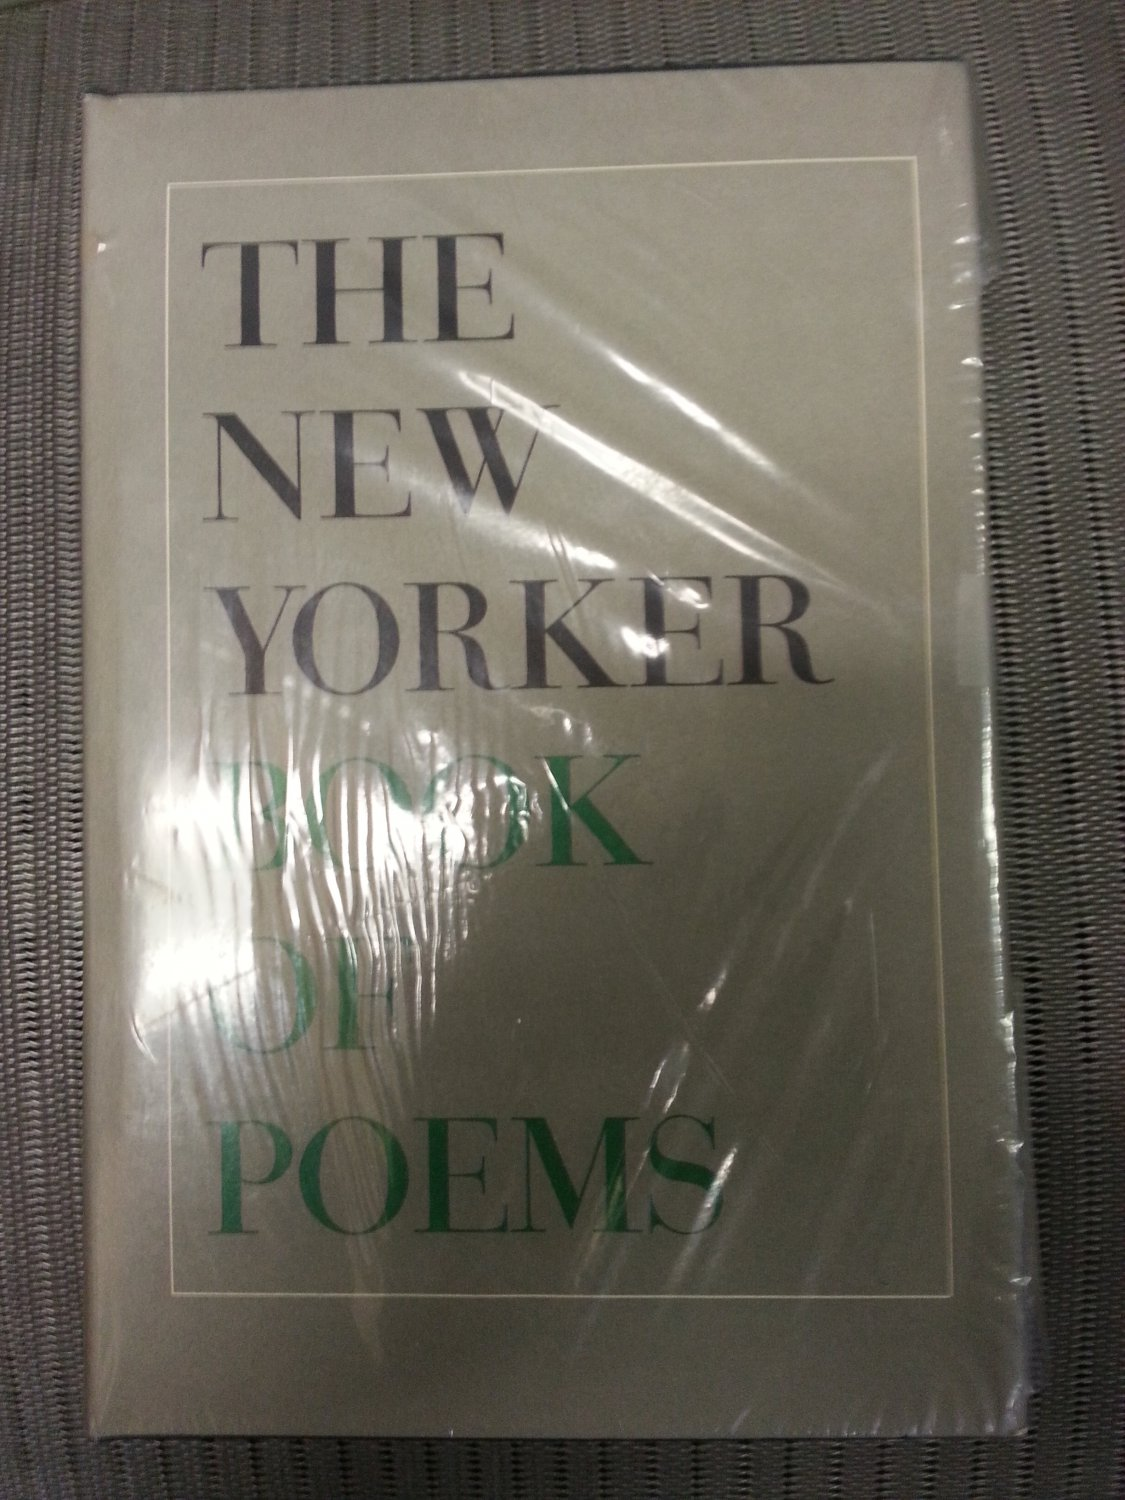 The New Yorker Book of Poems Hardcover by The New Yorker !